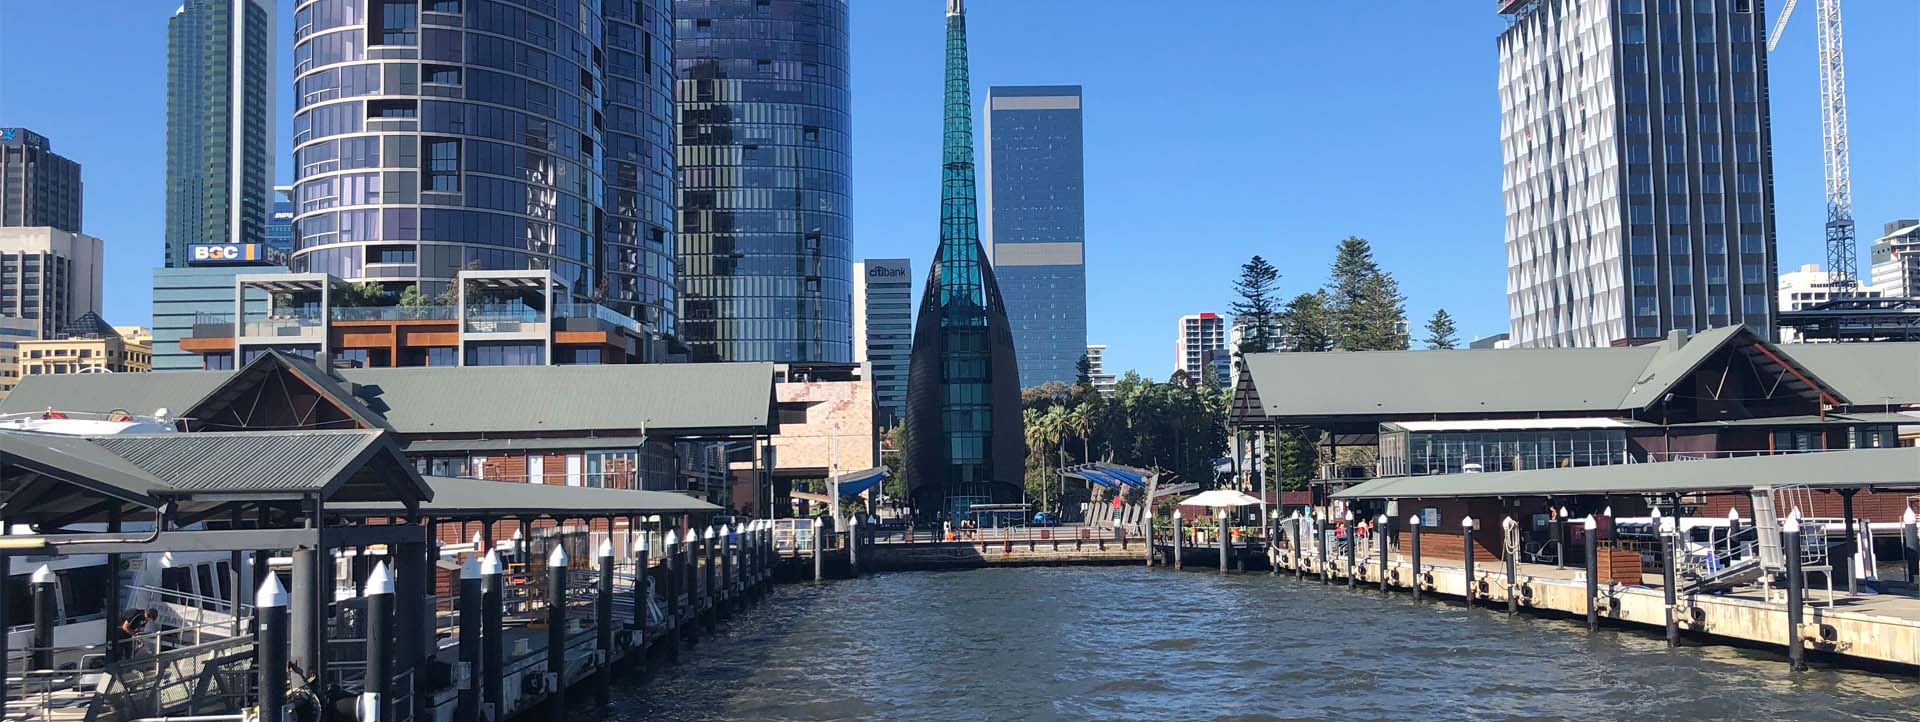 Swan River bell tower